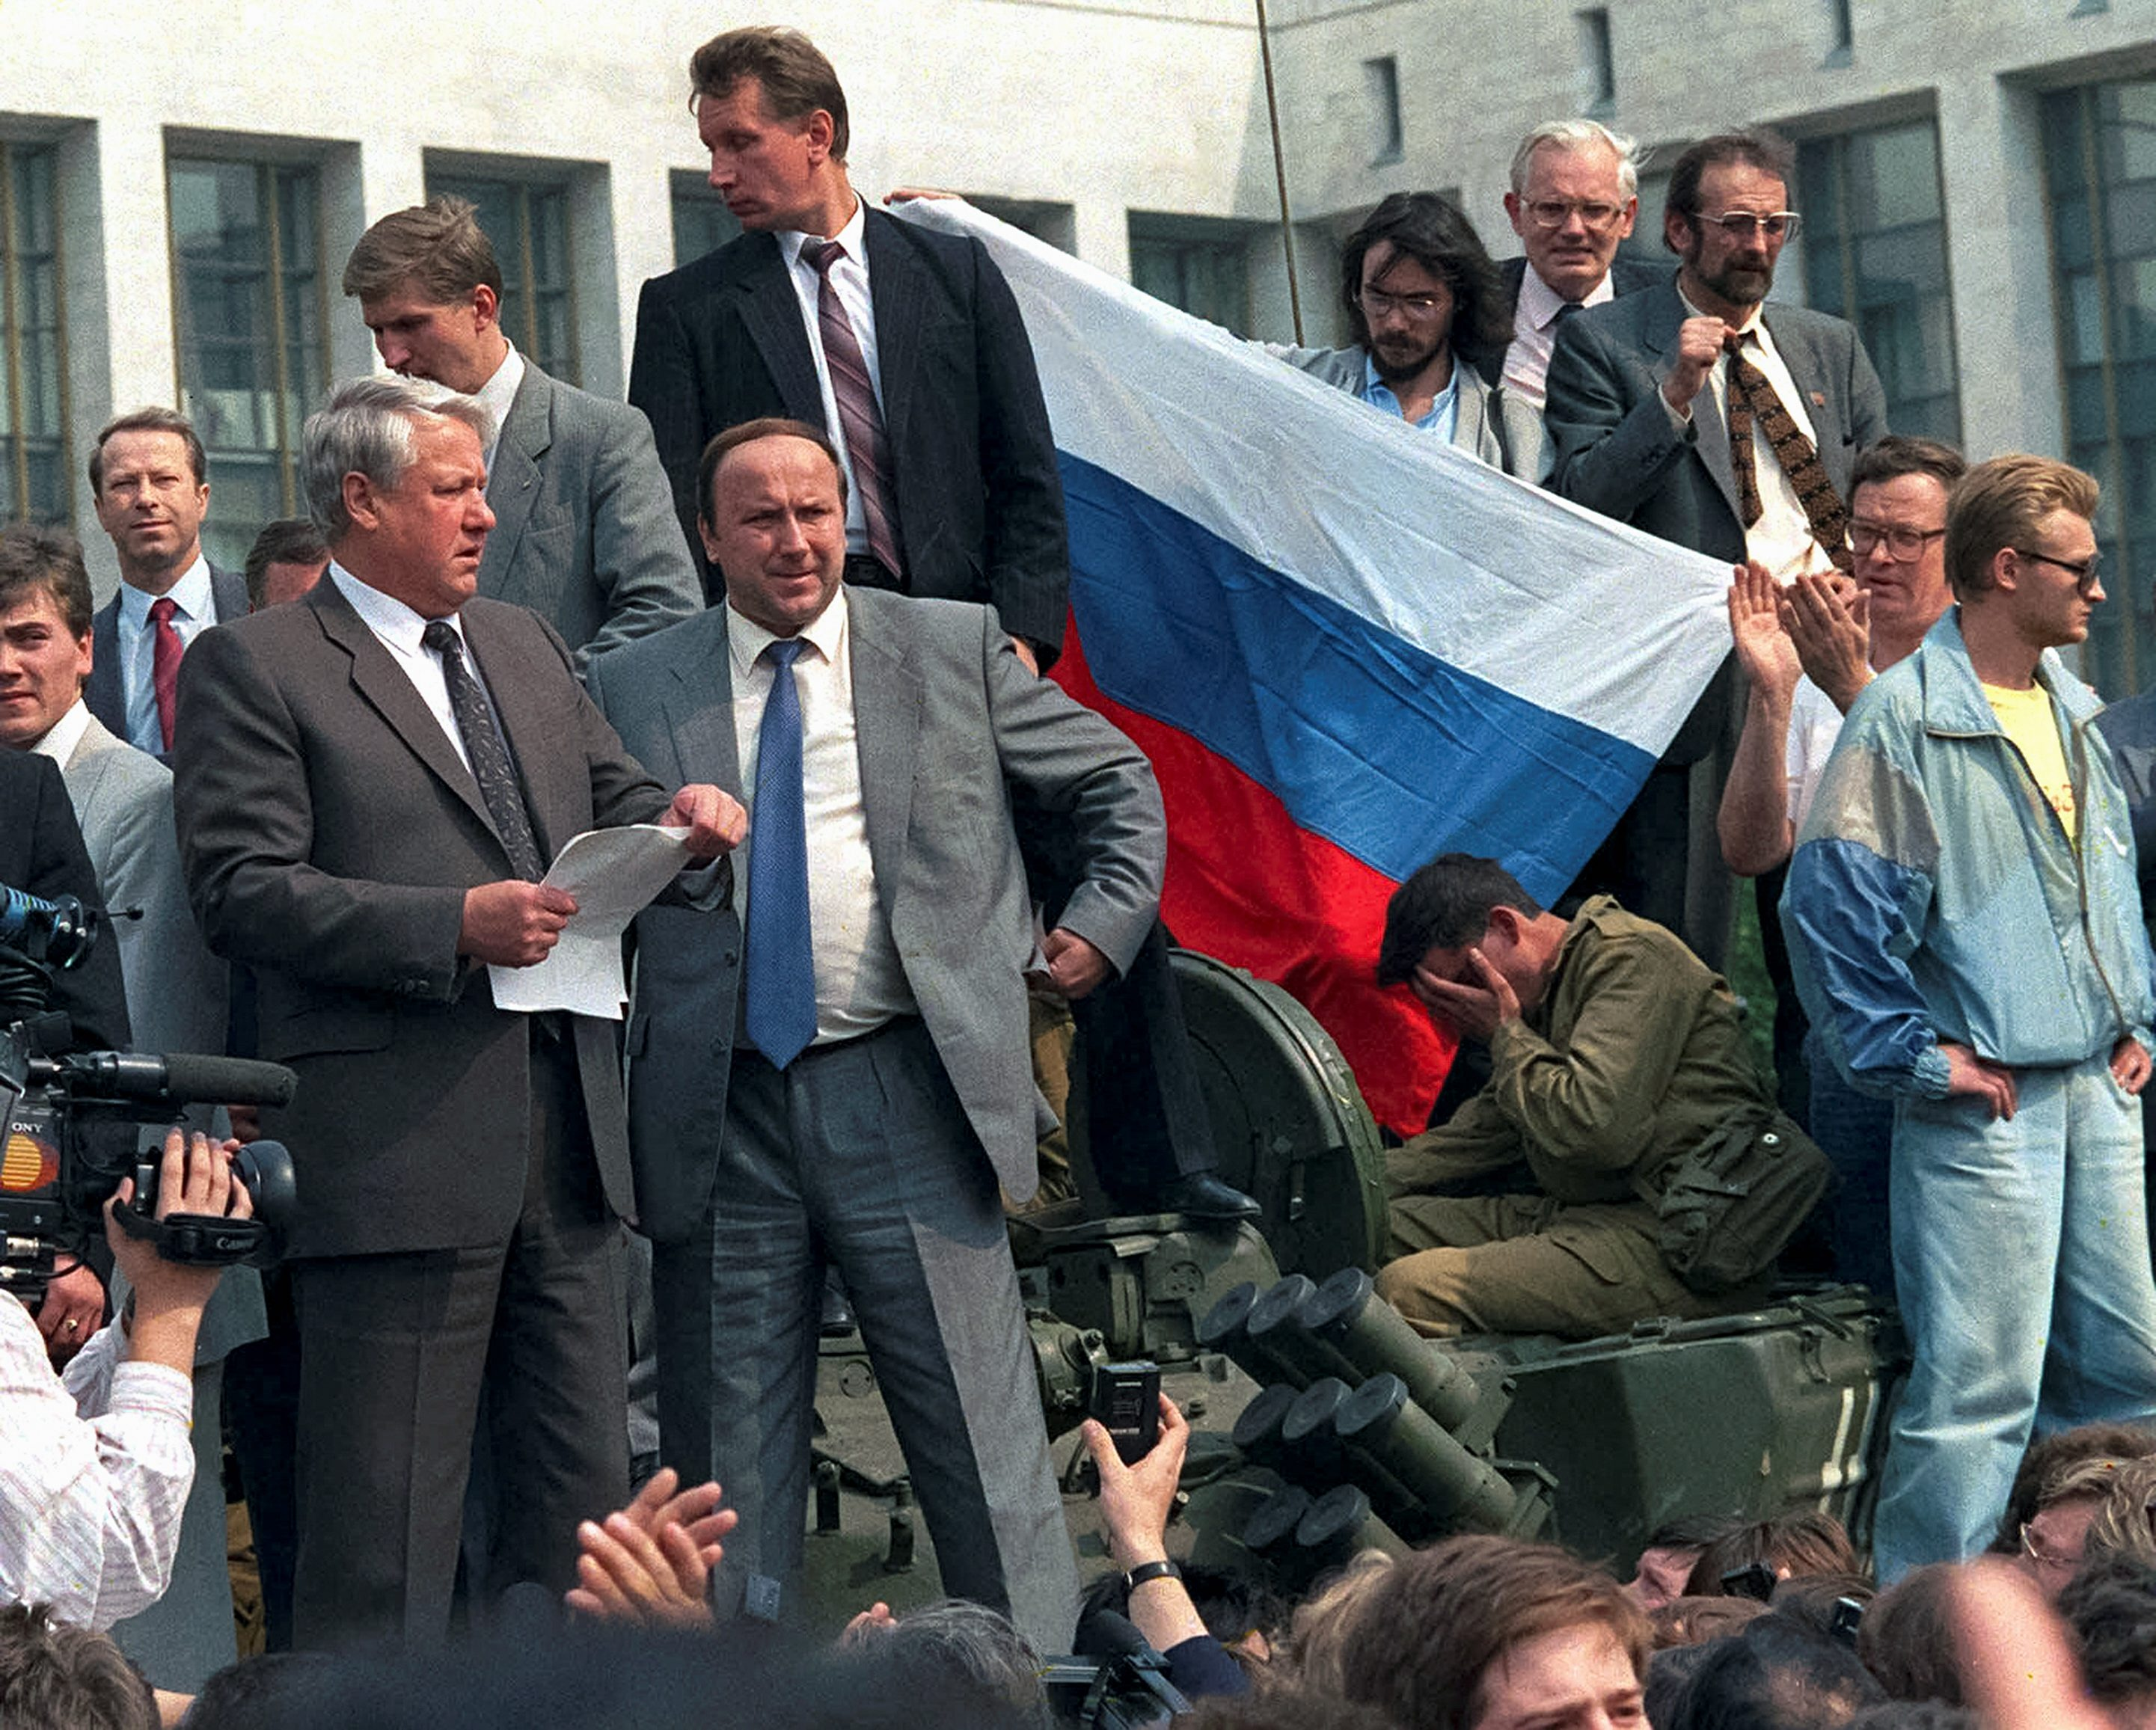 Russian President Boris Yeltsin, foreground left, addresses the crowd standing atop of a tank in front of the Russian Government building, also known as White House